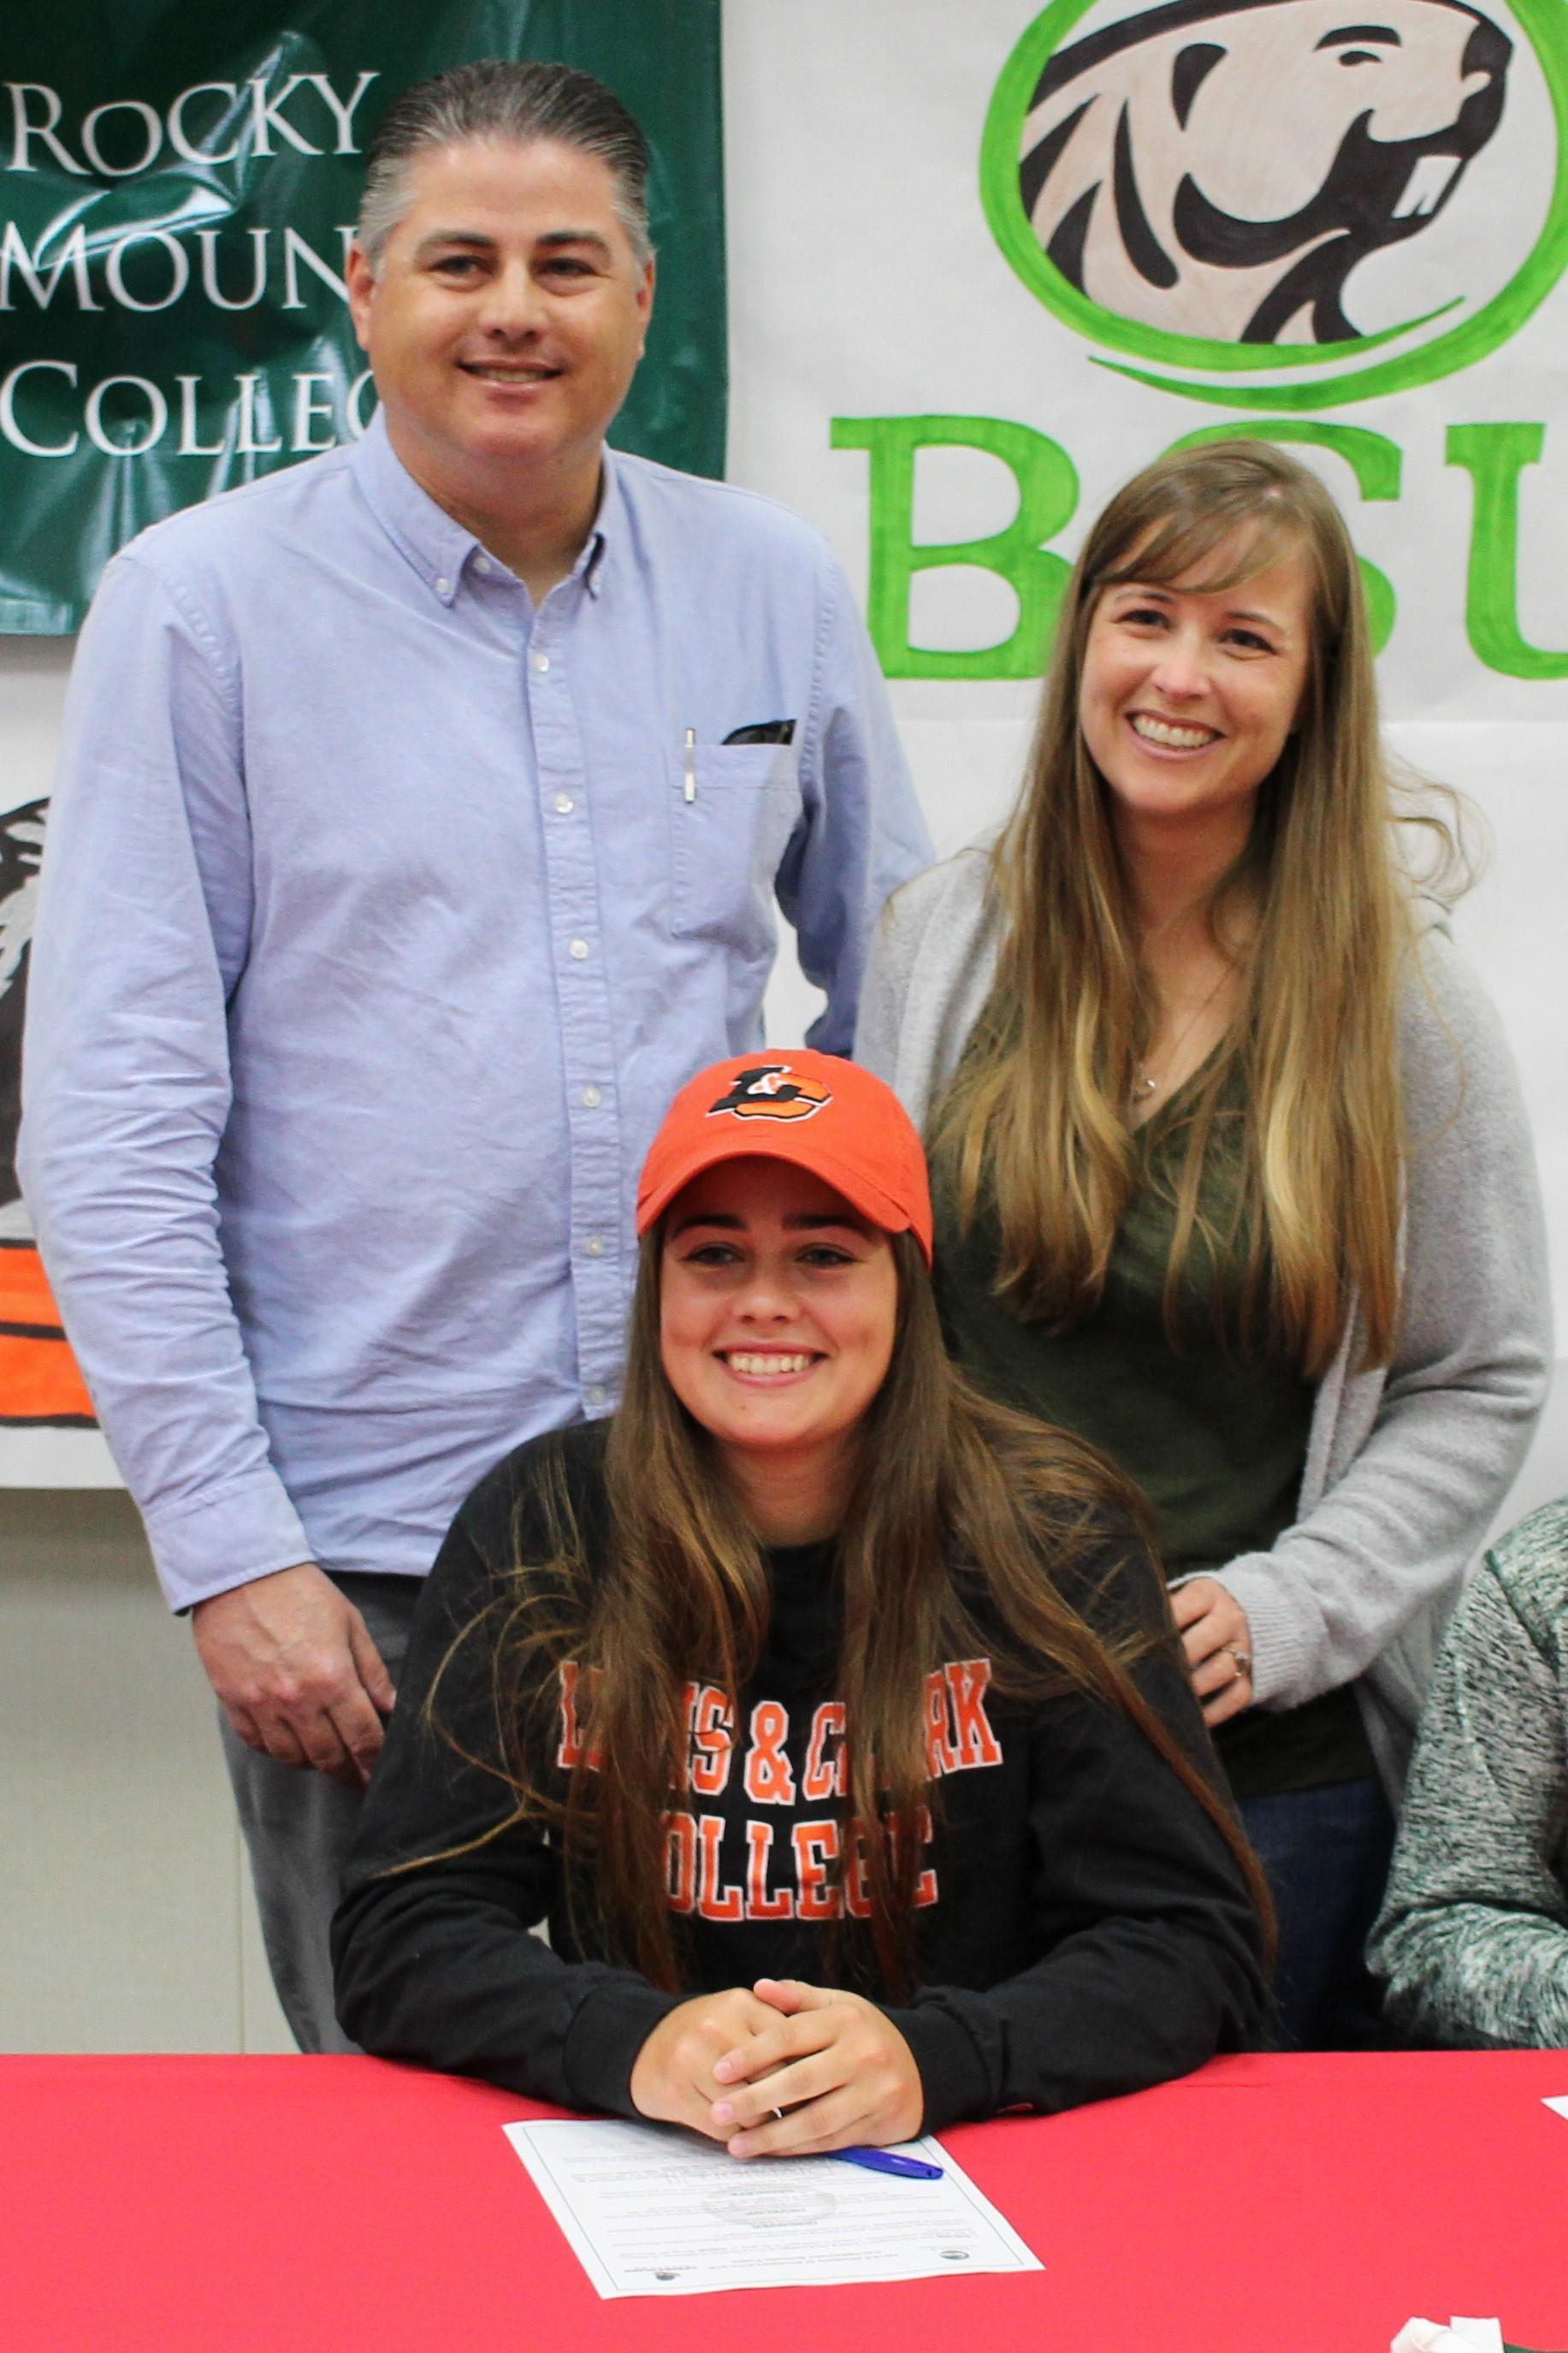 Kylie Hill signs her National Letter of Intent to Attend Lewis & Clark University in Portland, Oregon to play Softball.